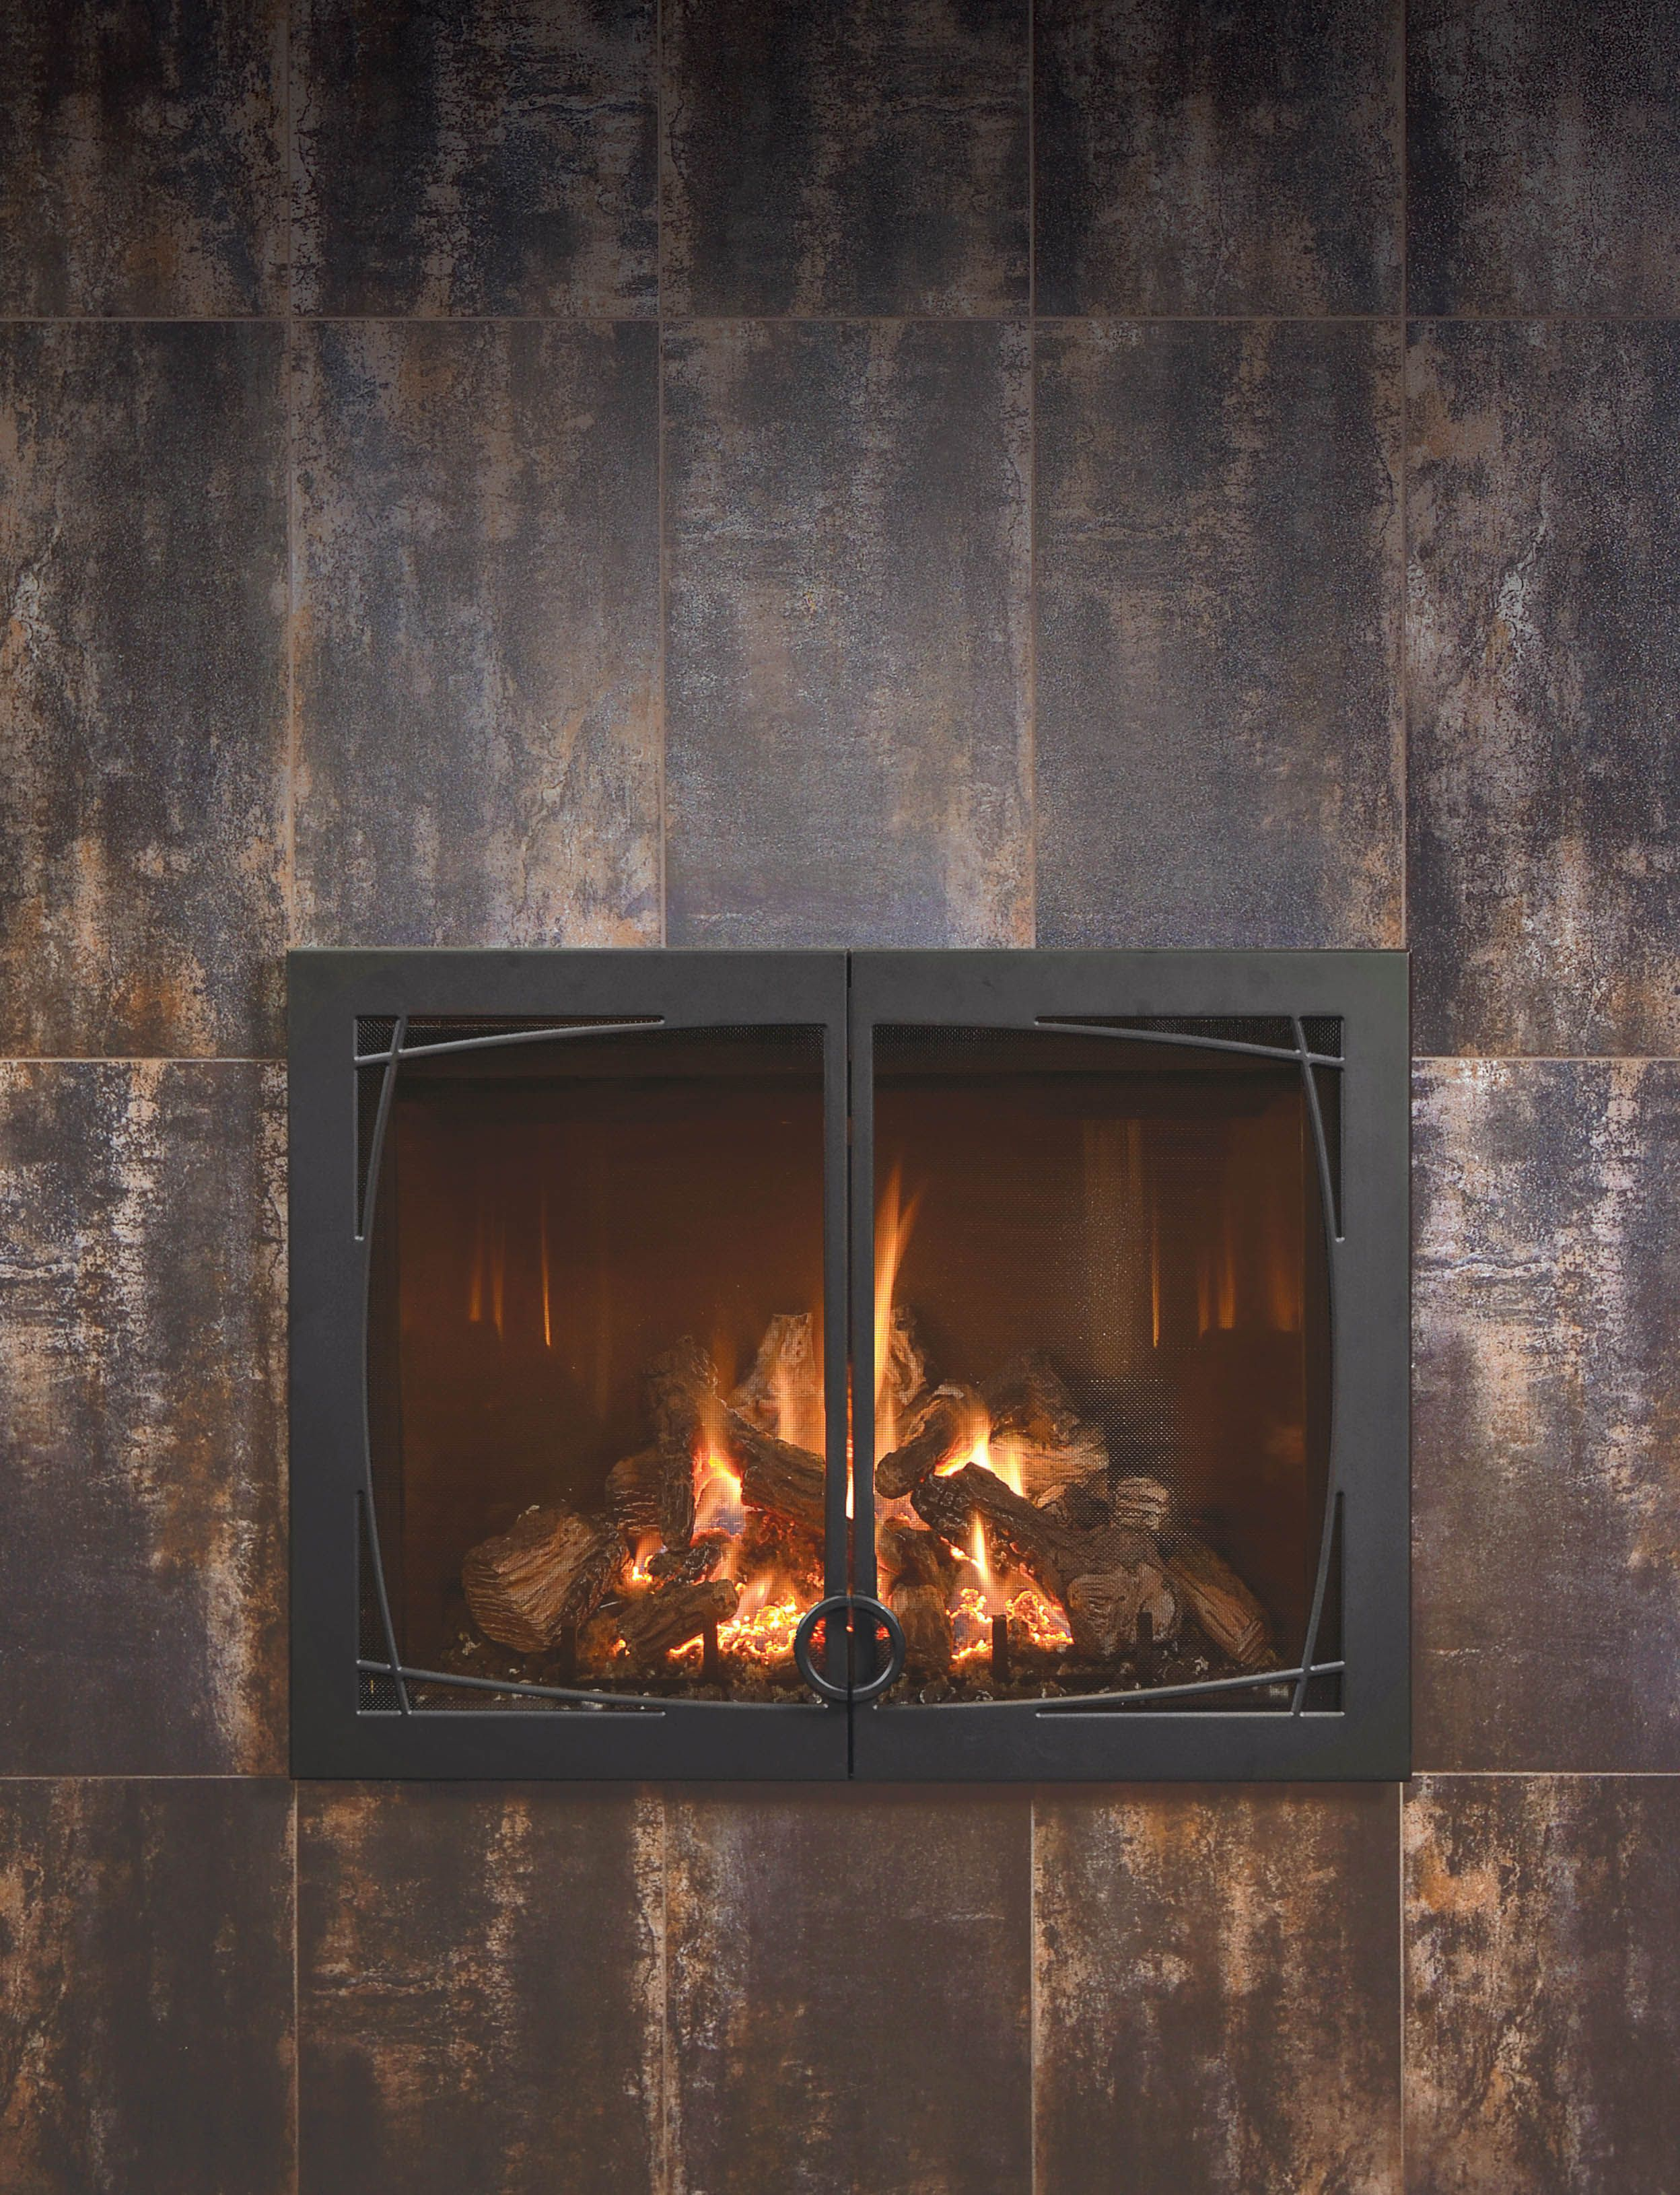 The Fullview Gas Fireplace With A Willow Front Keeps The Focus On